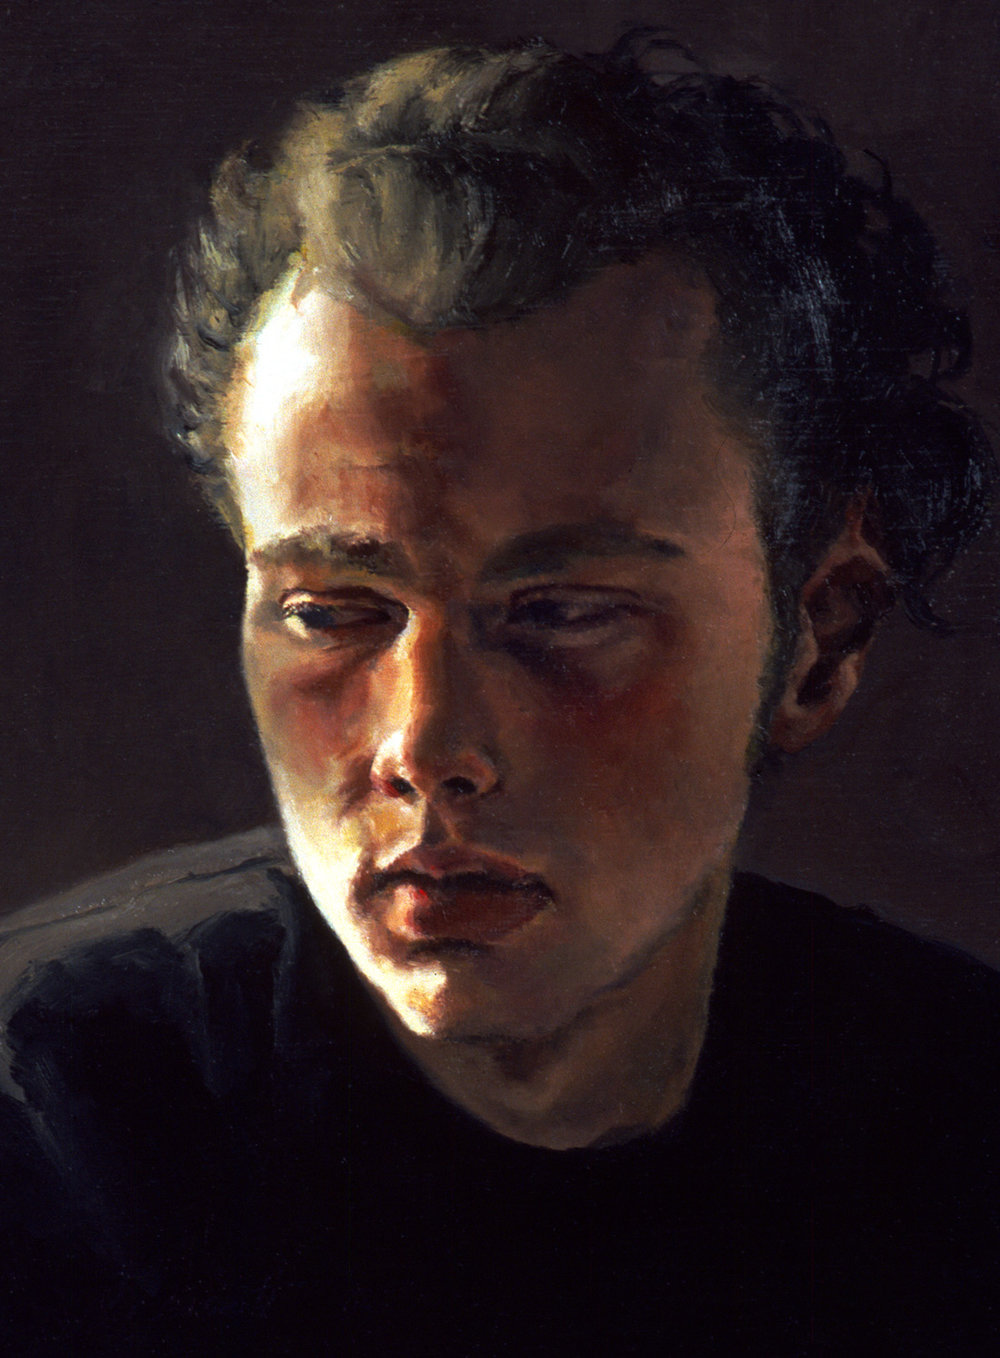 "Christopher , Oil on wood panel, 2003,12"" x 9"", Private Collection"